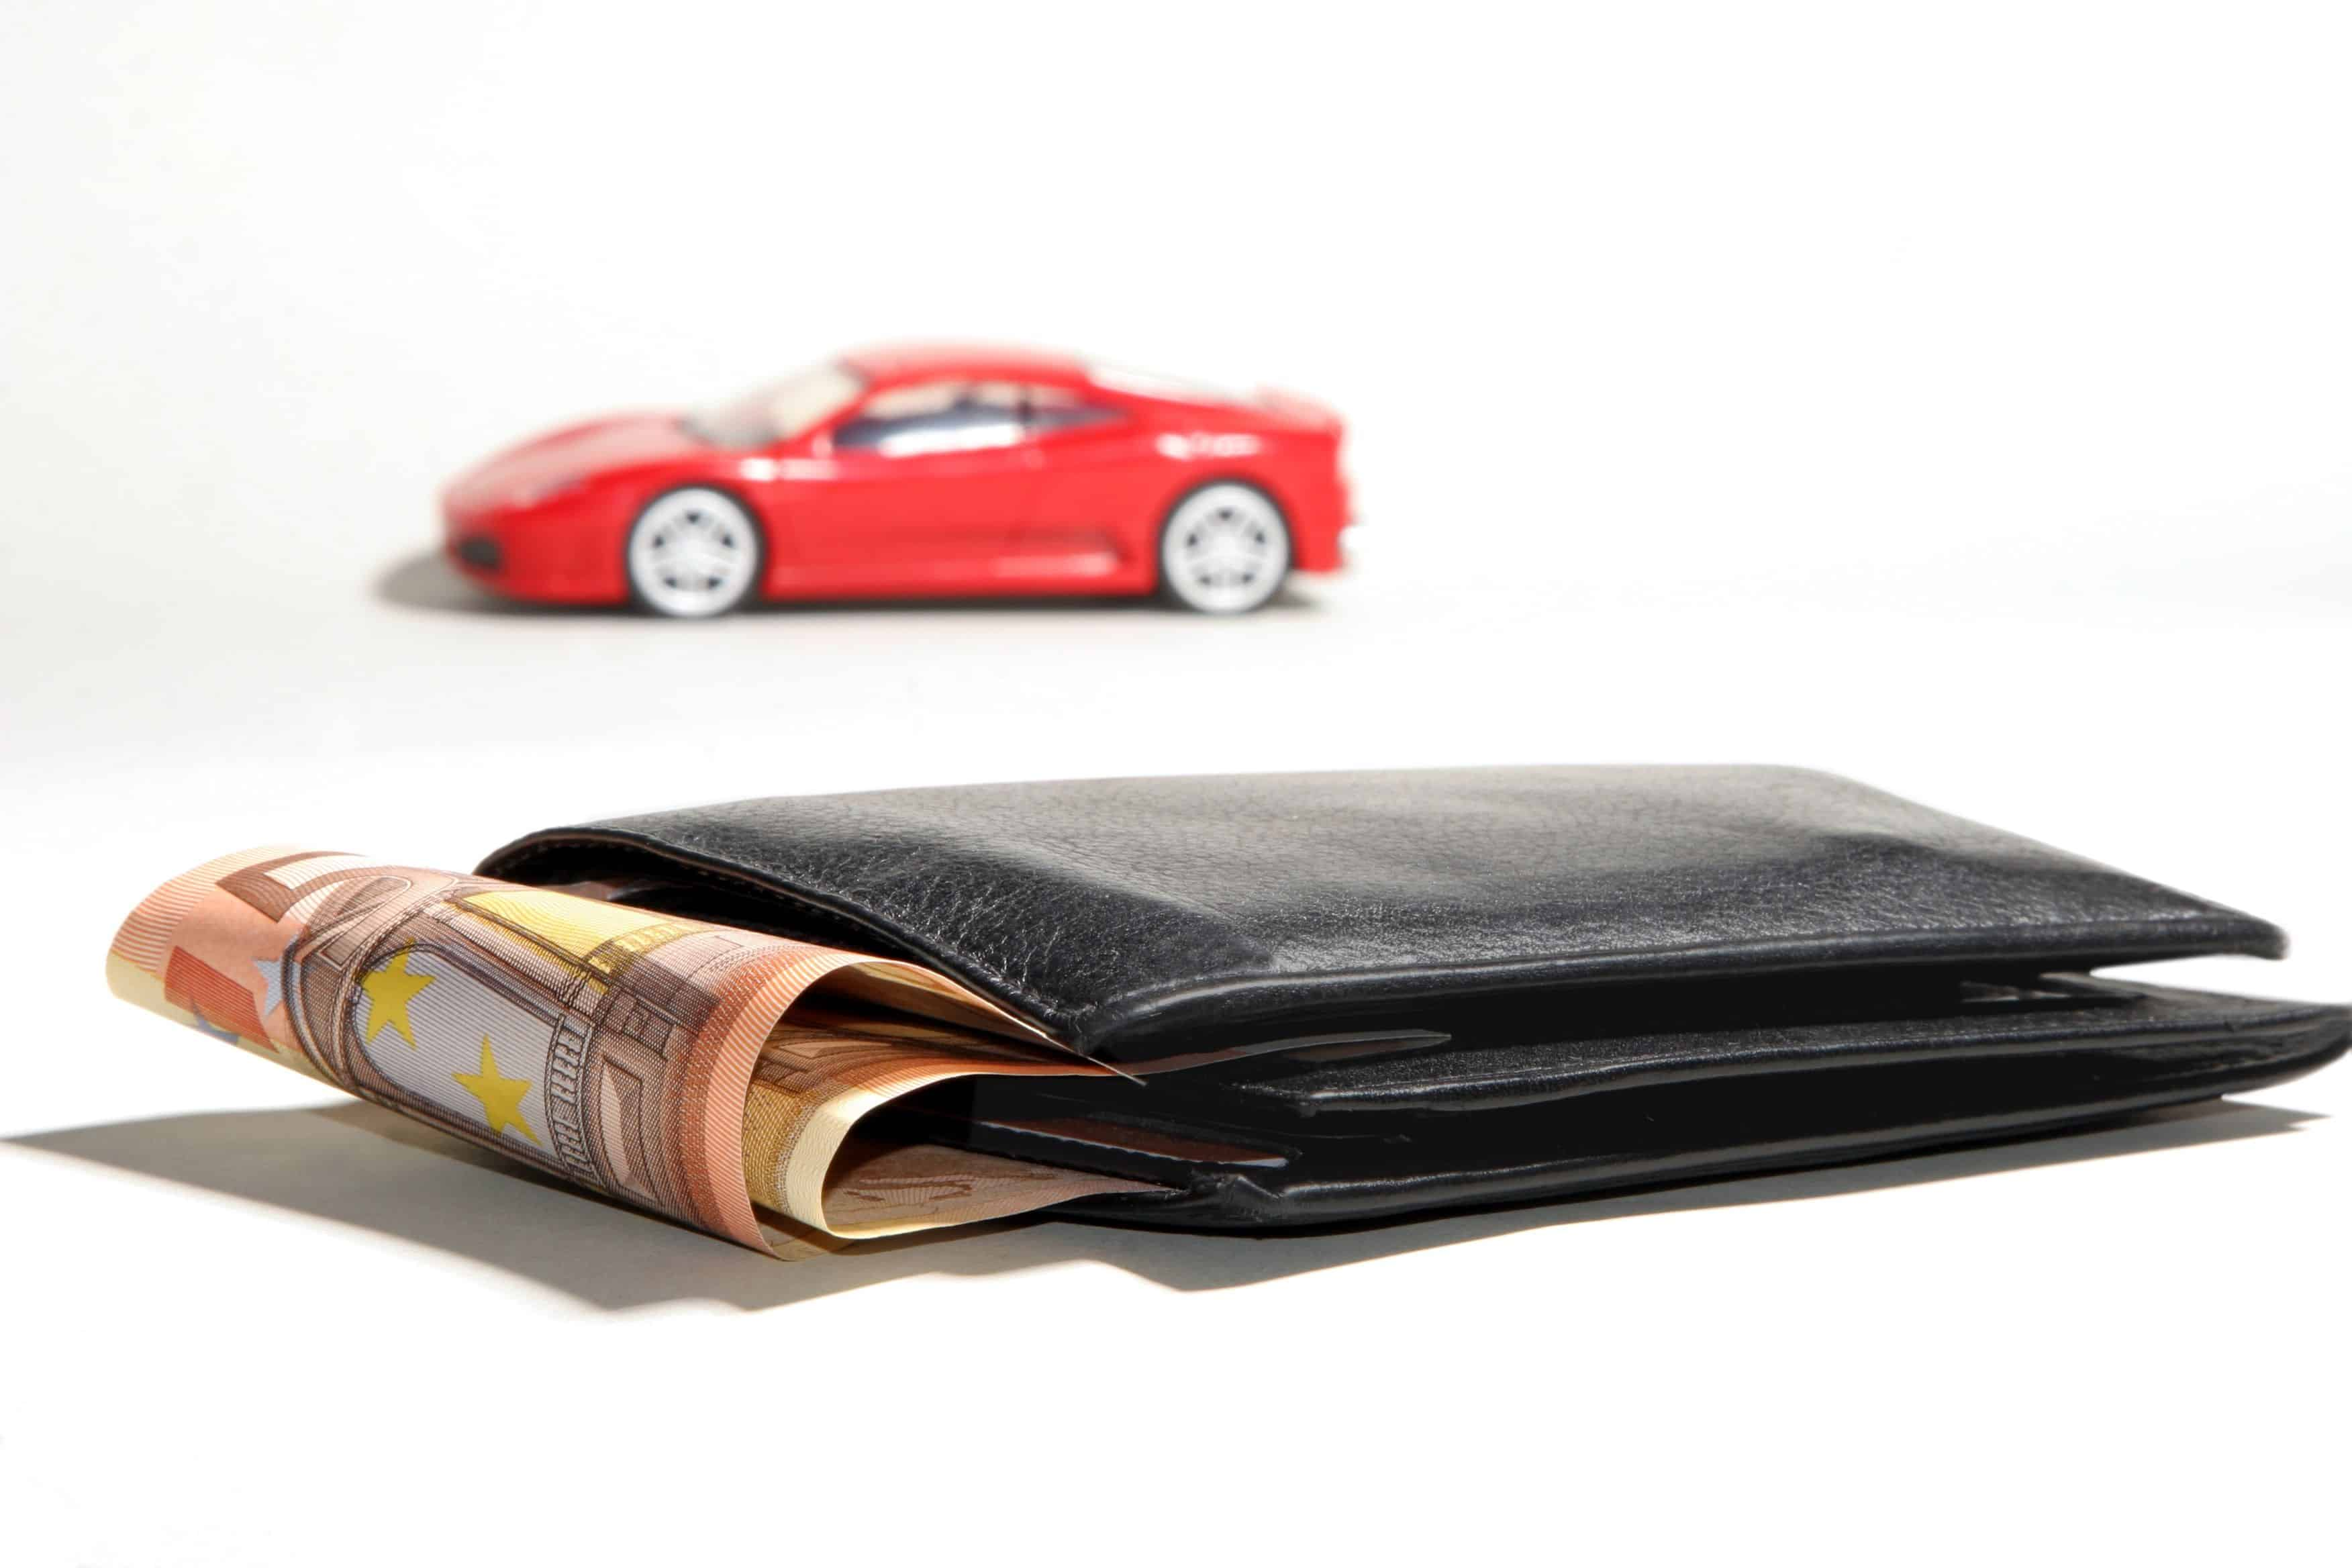 Money & cars can be considered wealth to be divided.